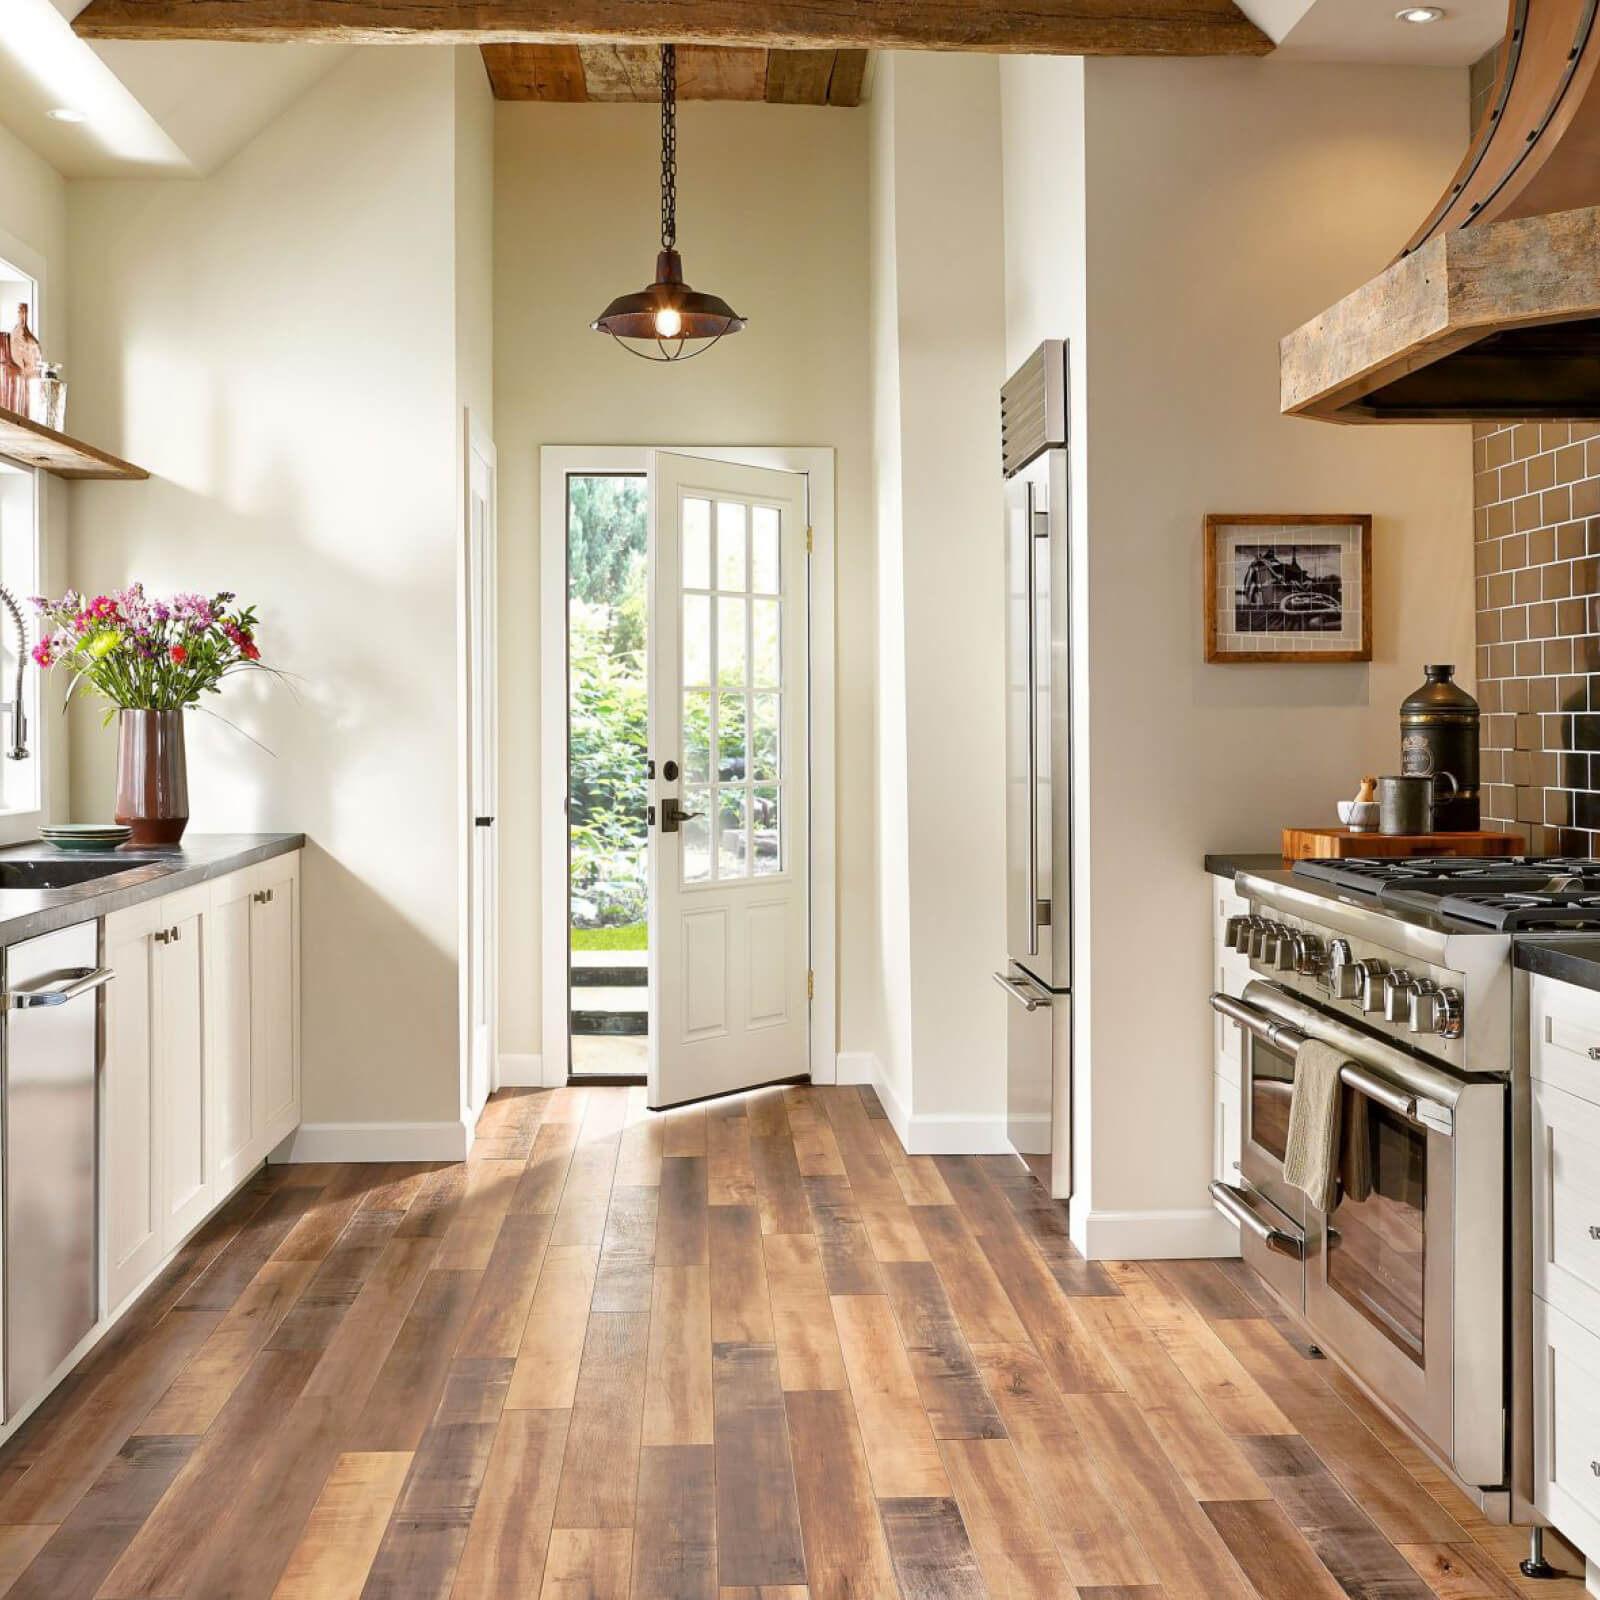 Laminate flooring in kitchen | Markville Carpet & Flooring